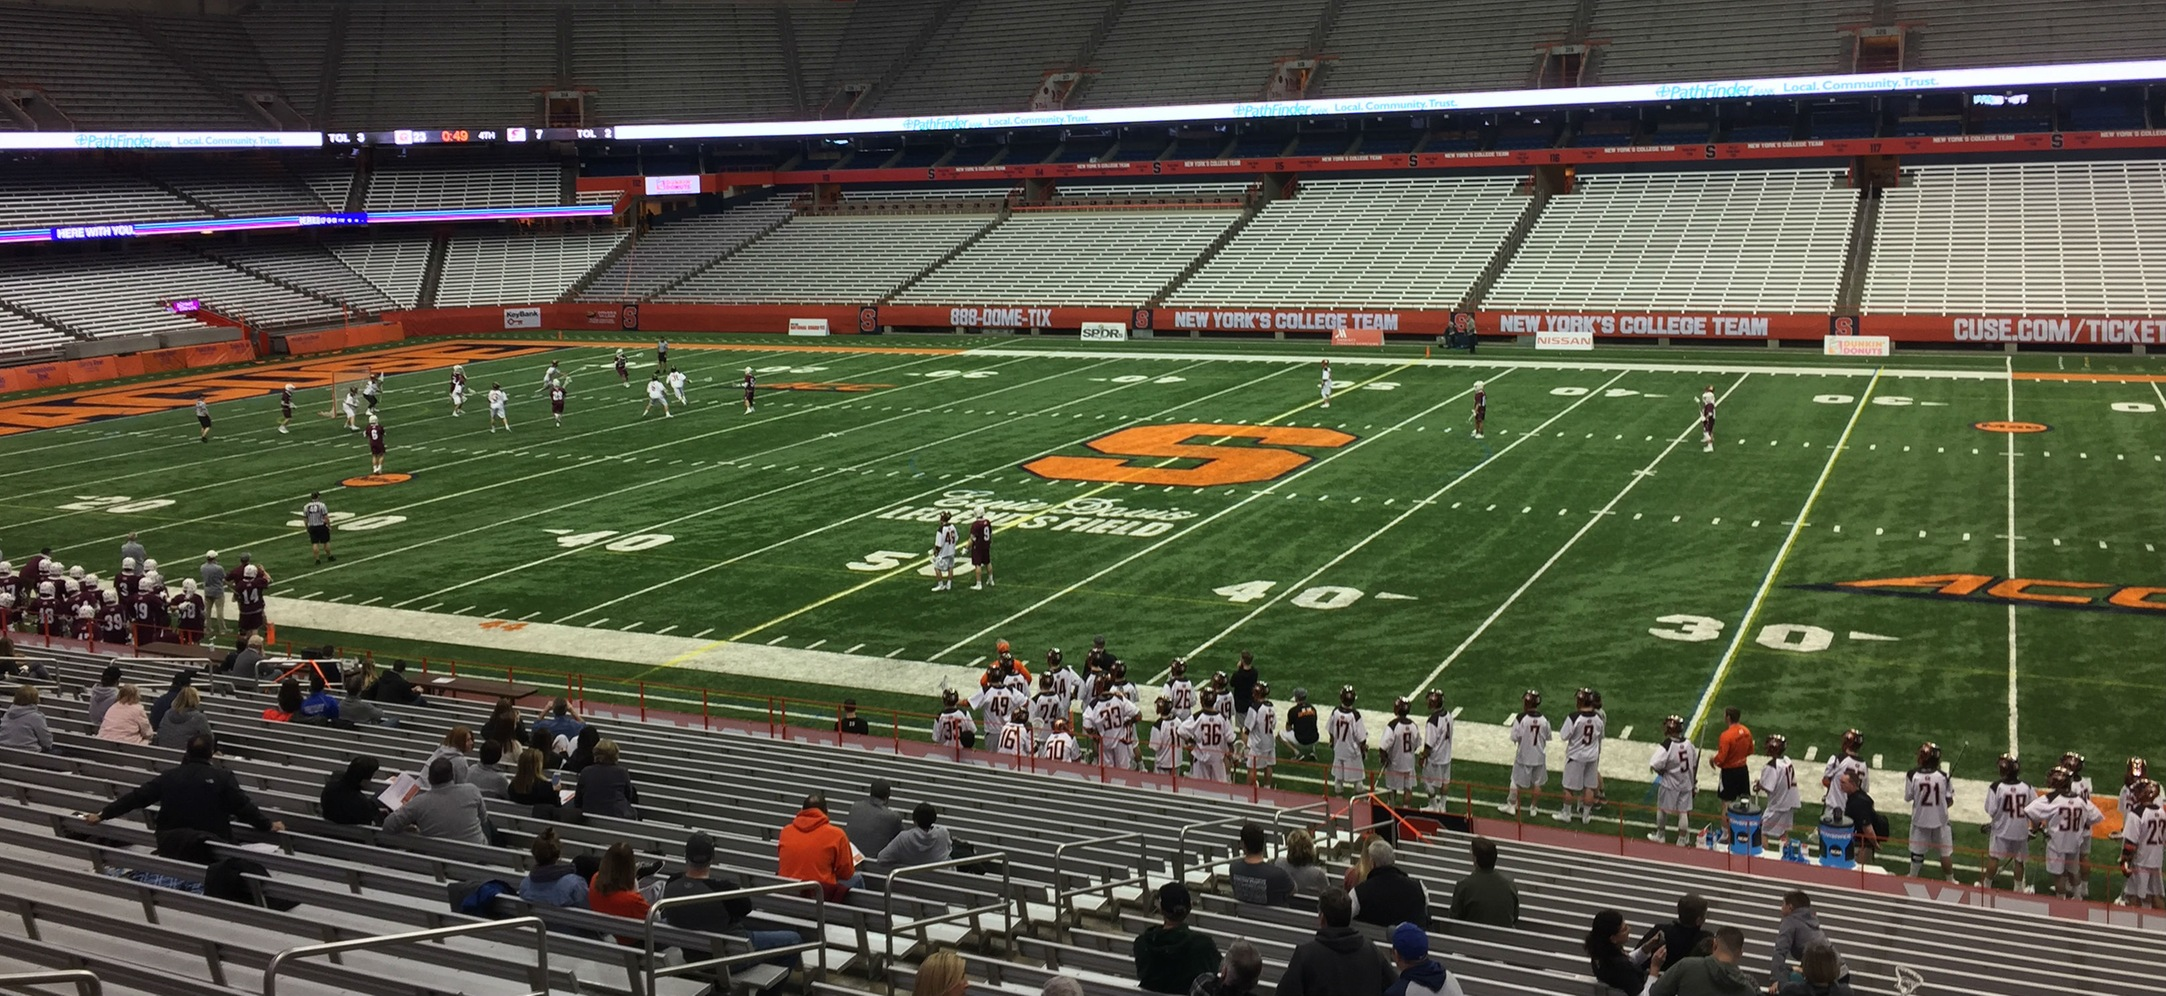 Men's Lacrosse Falls to Top-Ranked RIT, 23-7, in the Carrier Dome